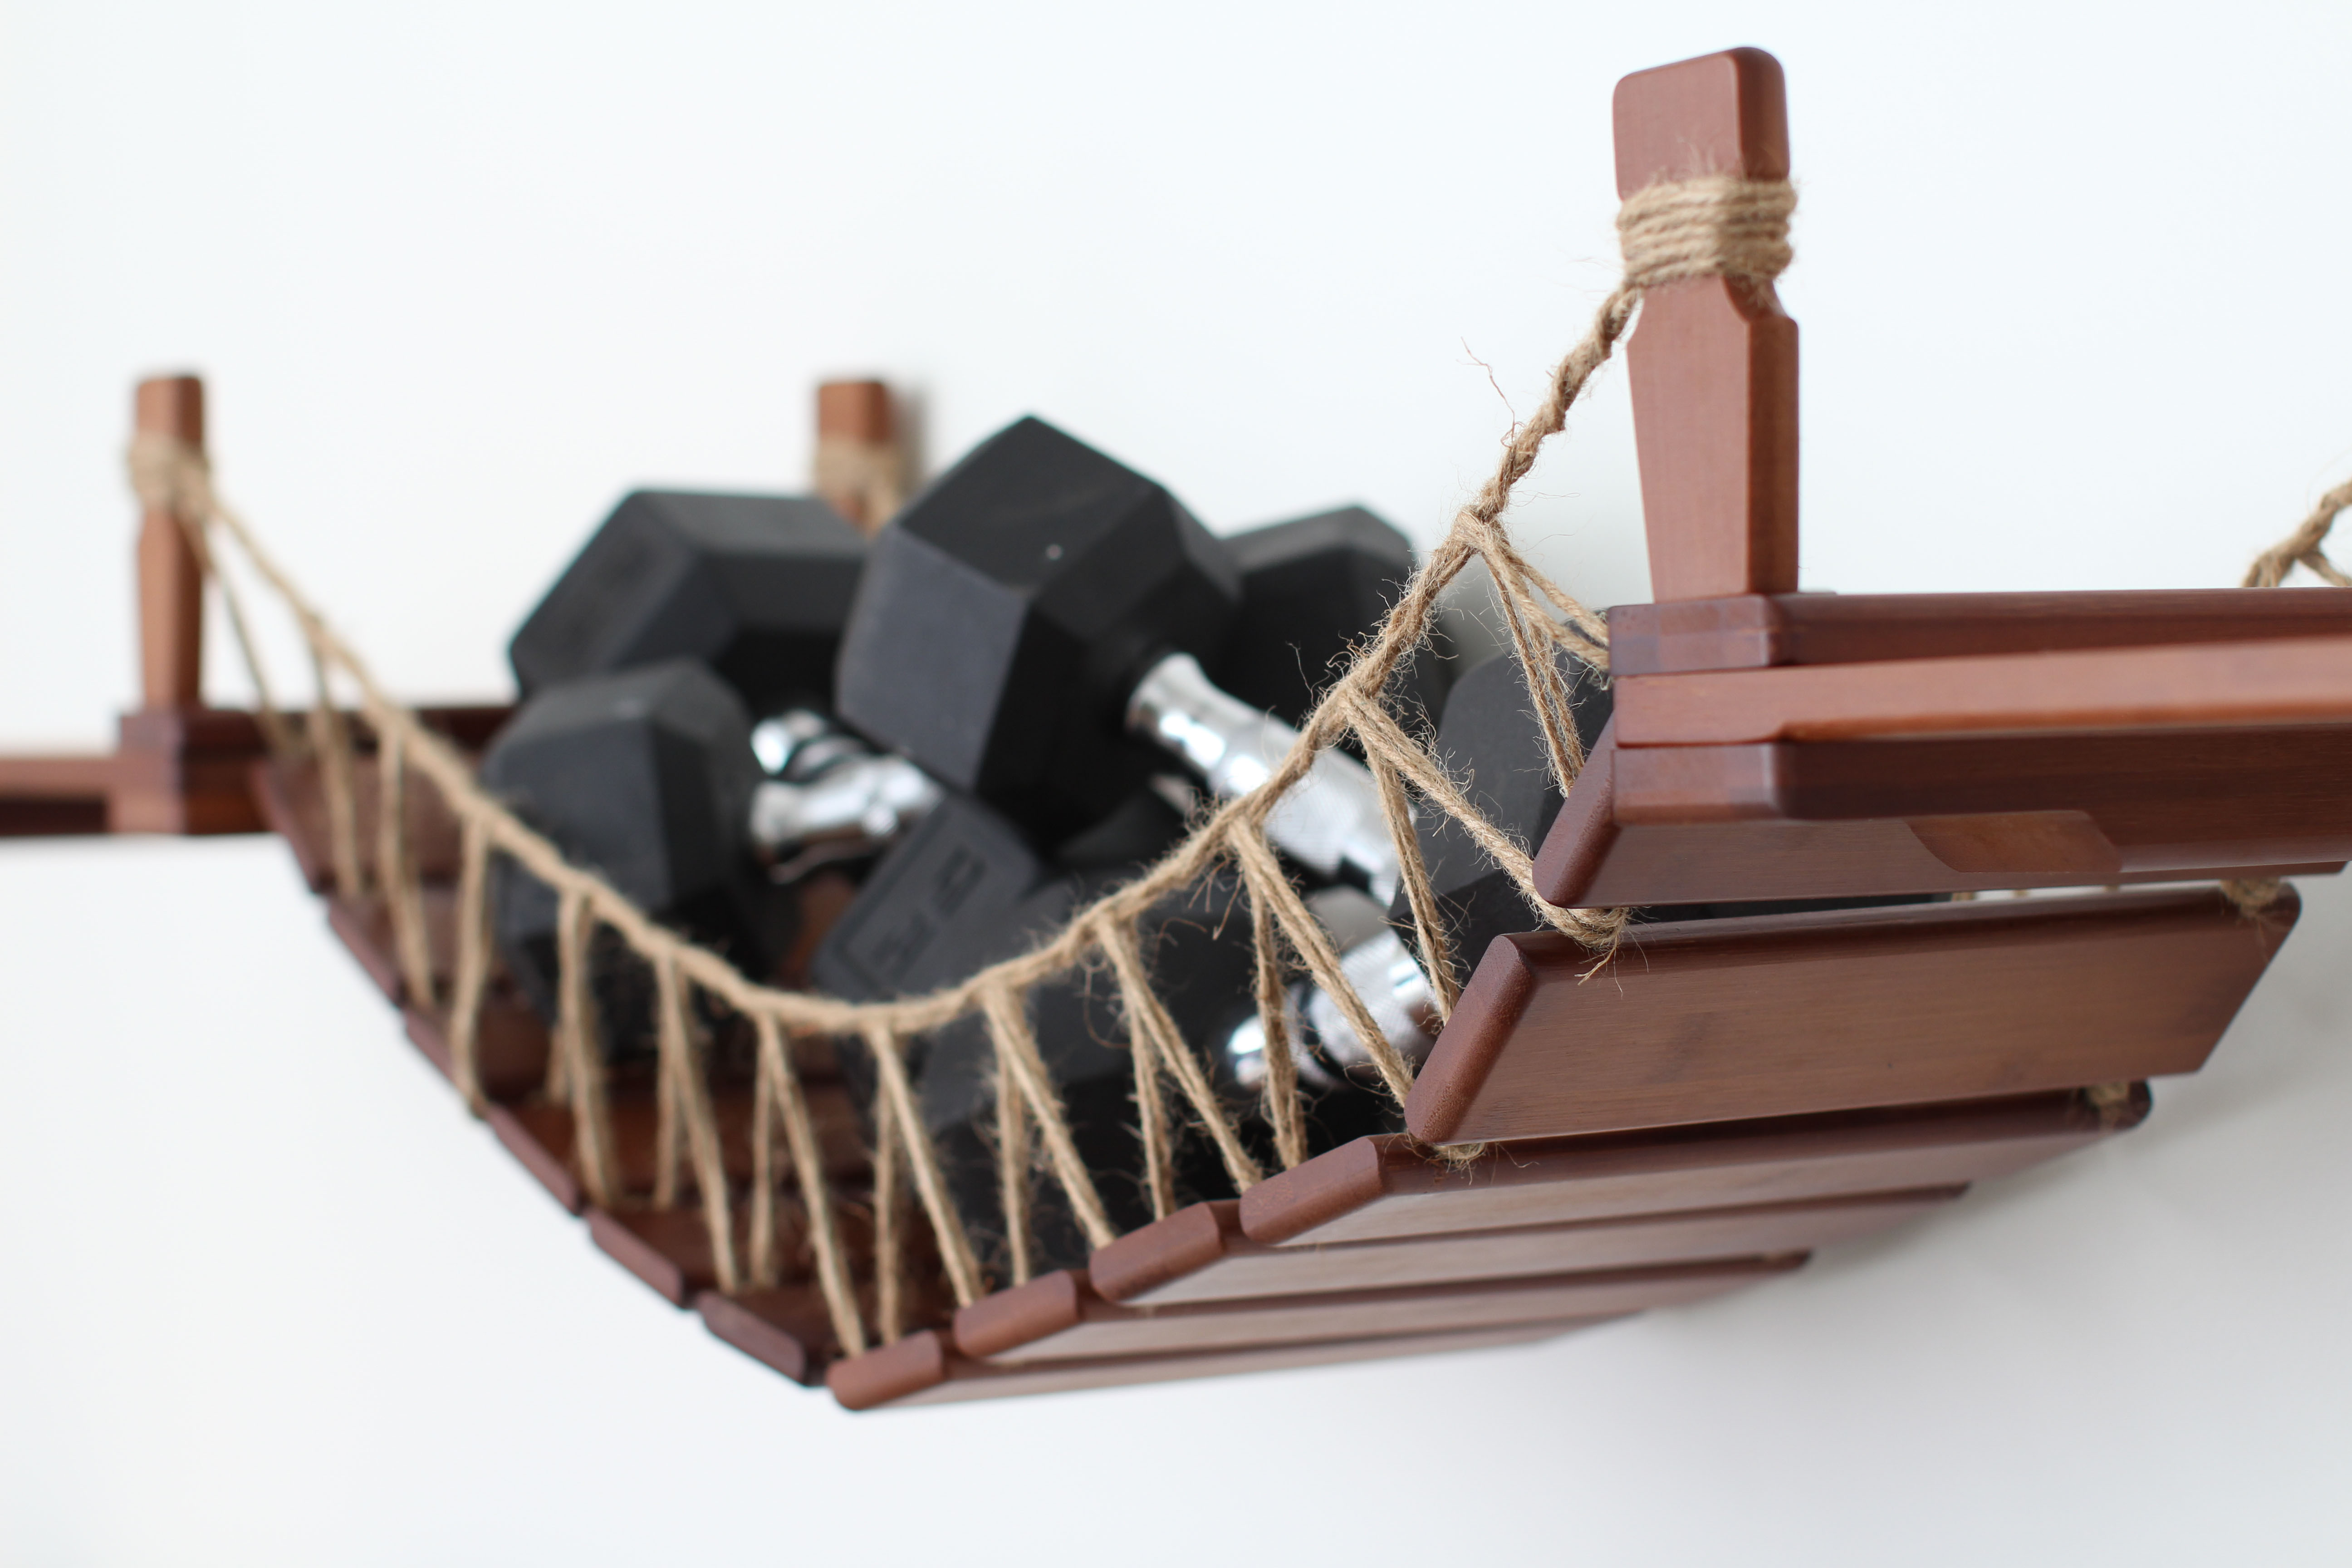 This photo displays the Bridge with Landings in English Chestnut, a dark brown stain, being weight tested with several hand weights.